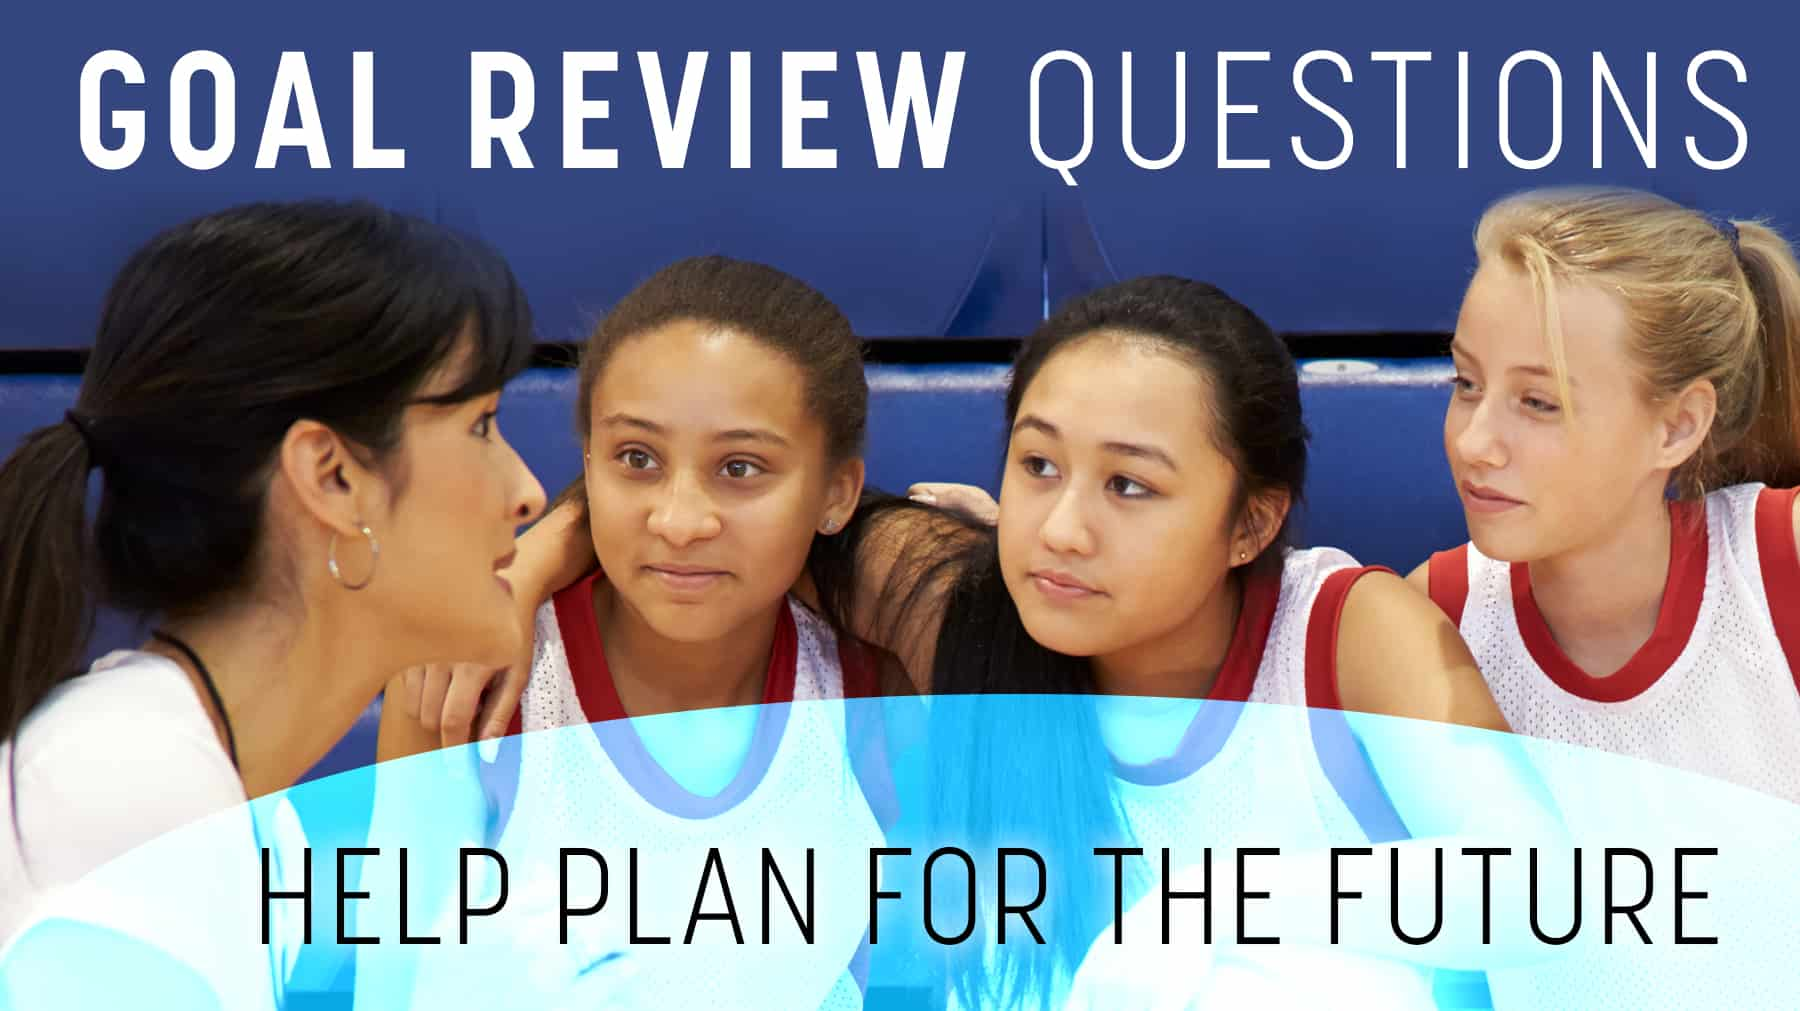 Goal review questions help plan for the future